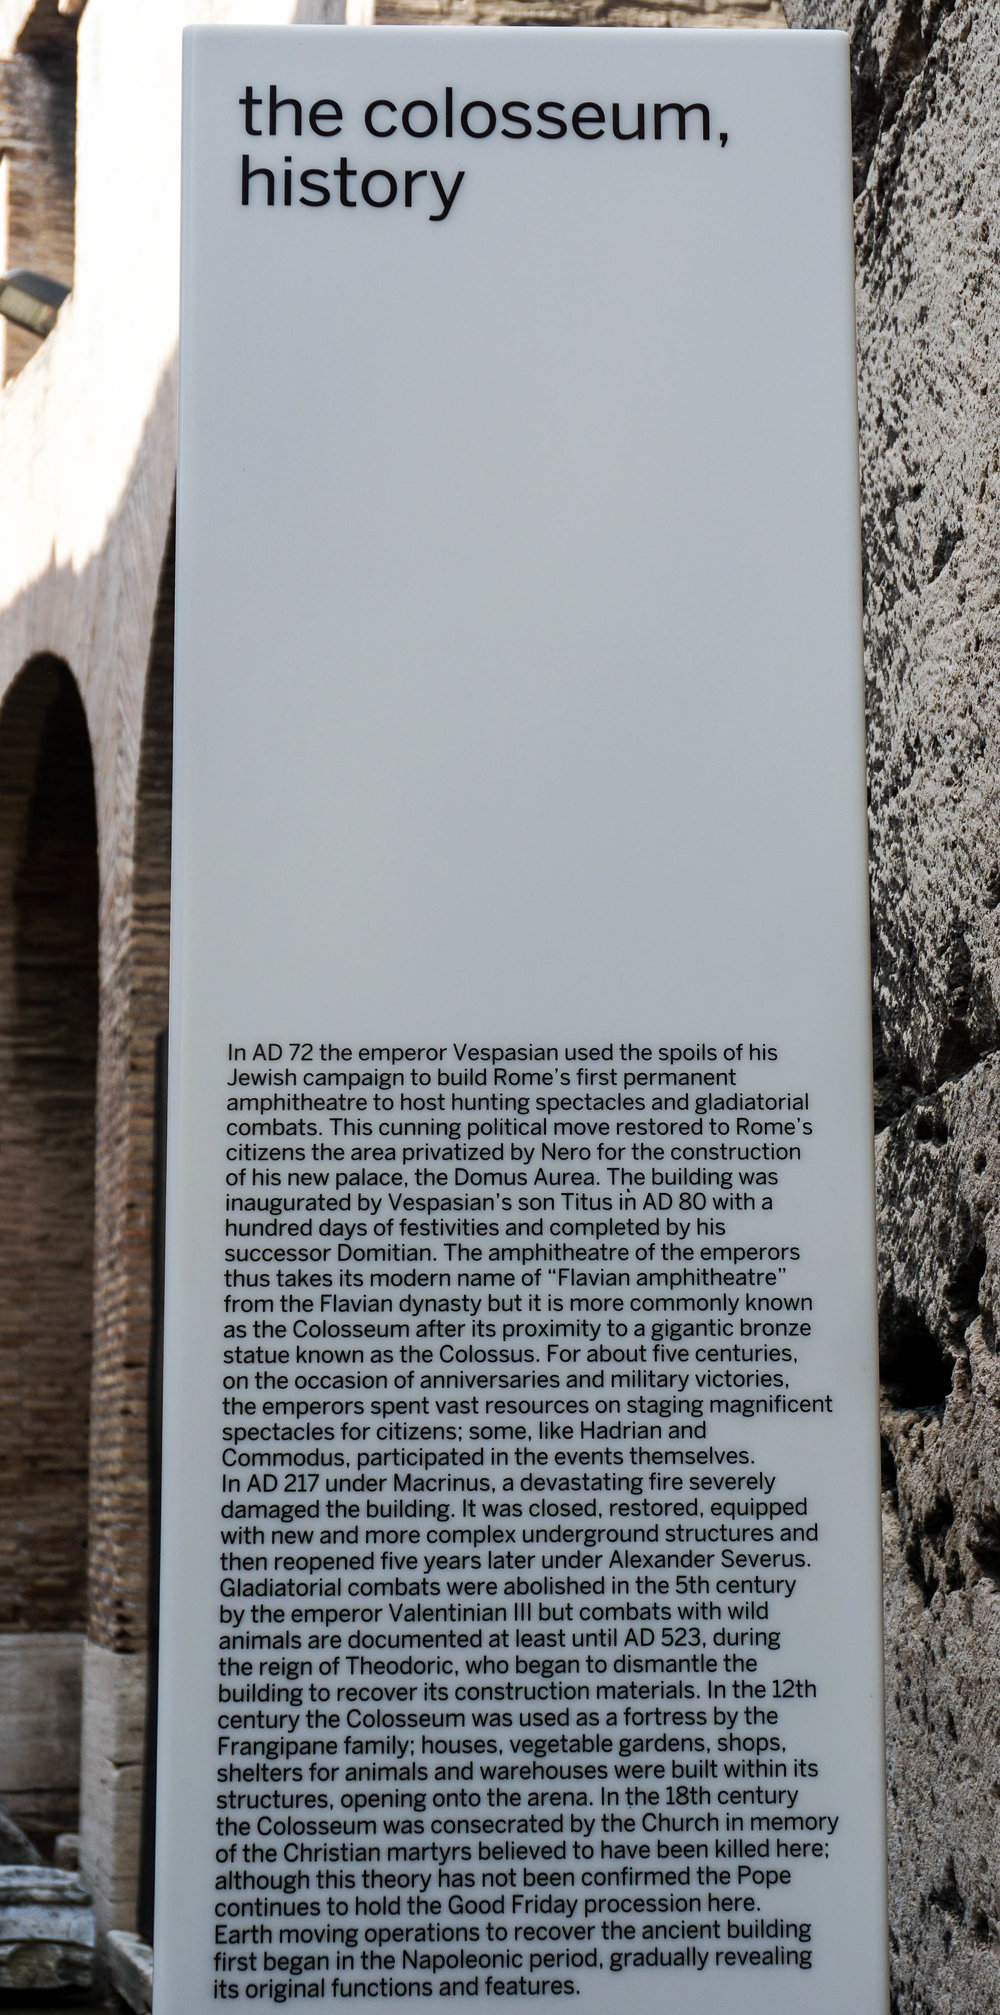 A bit of history on the Colosseum